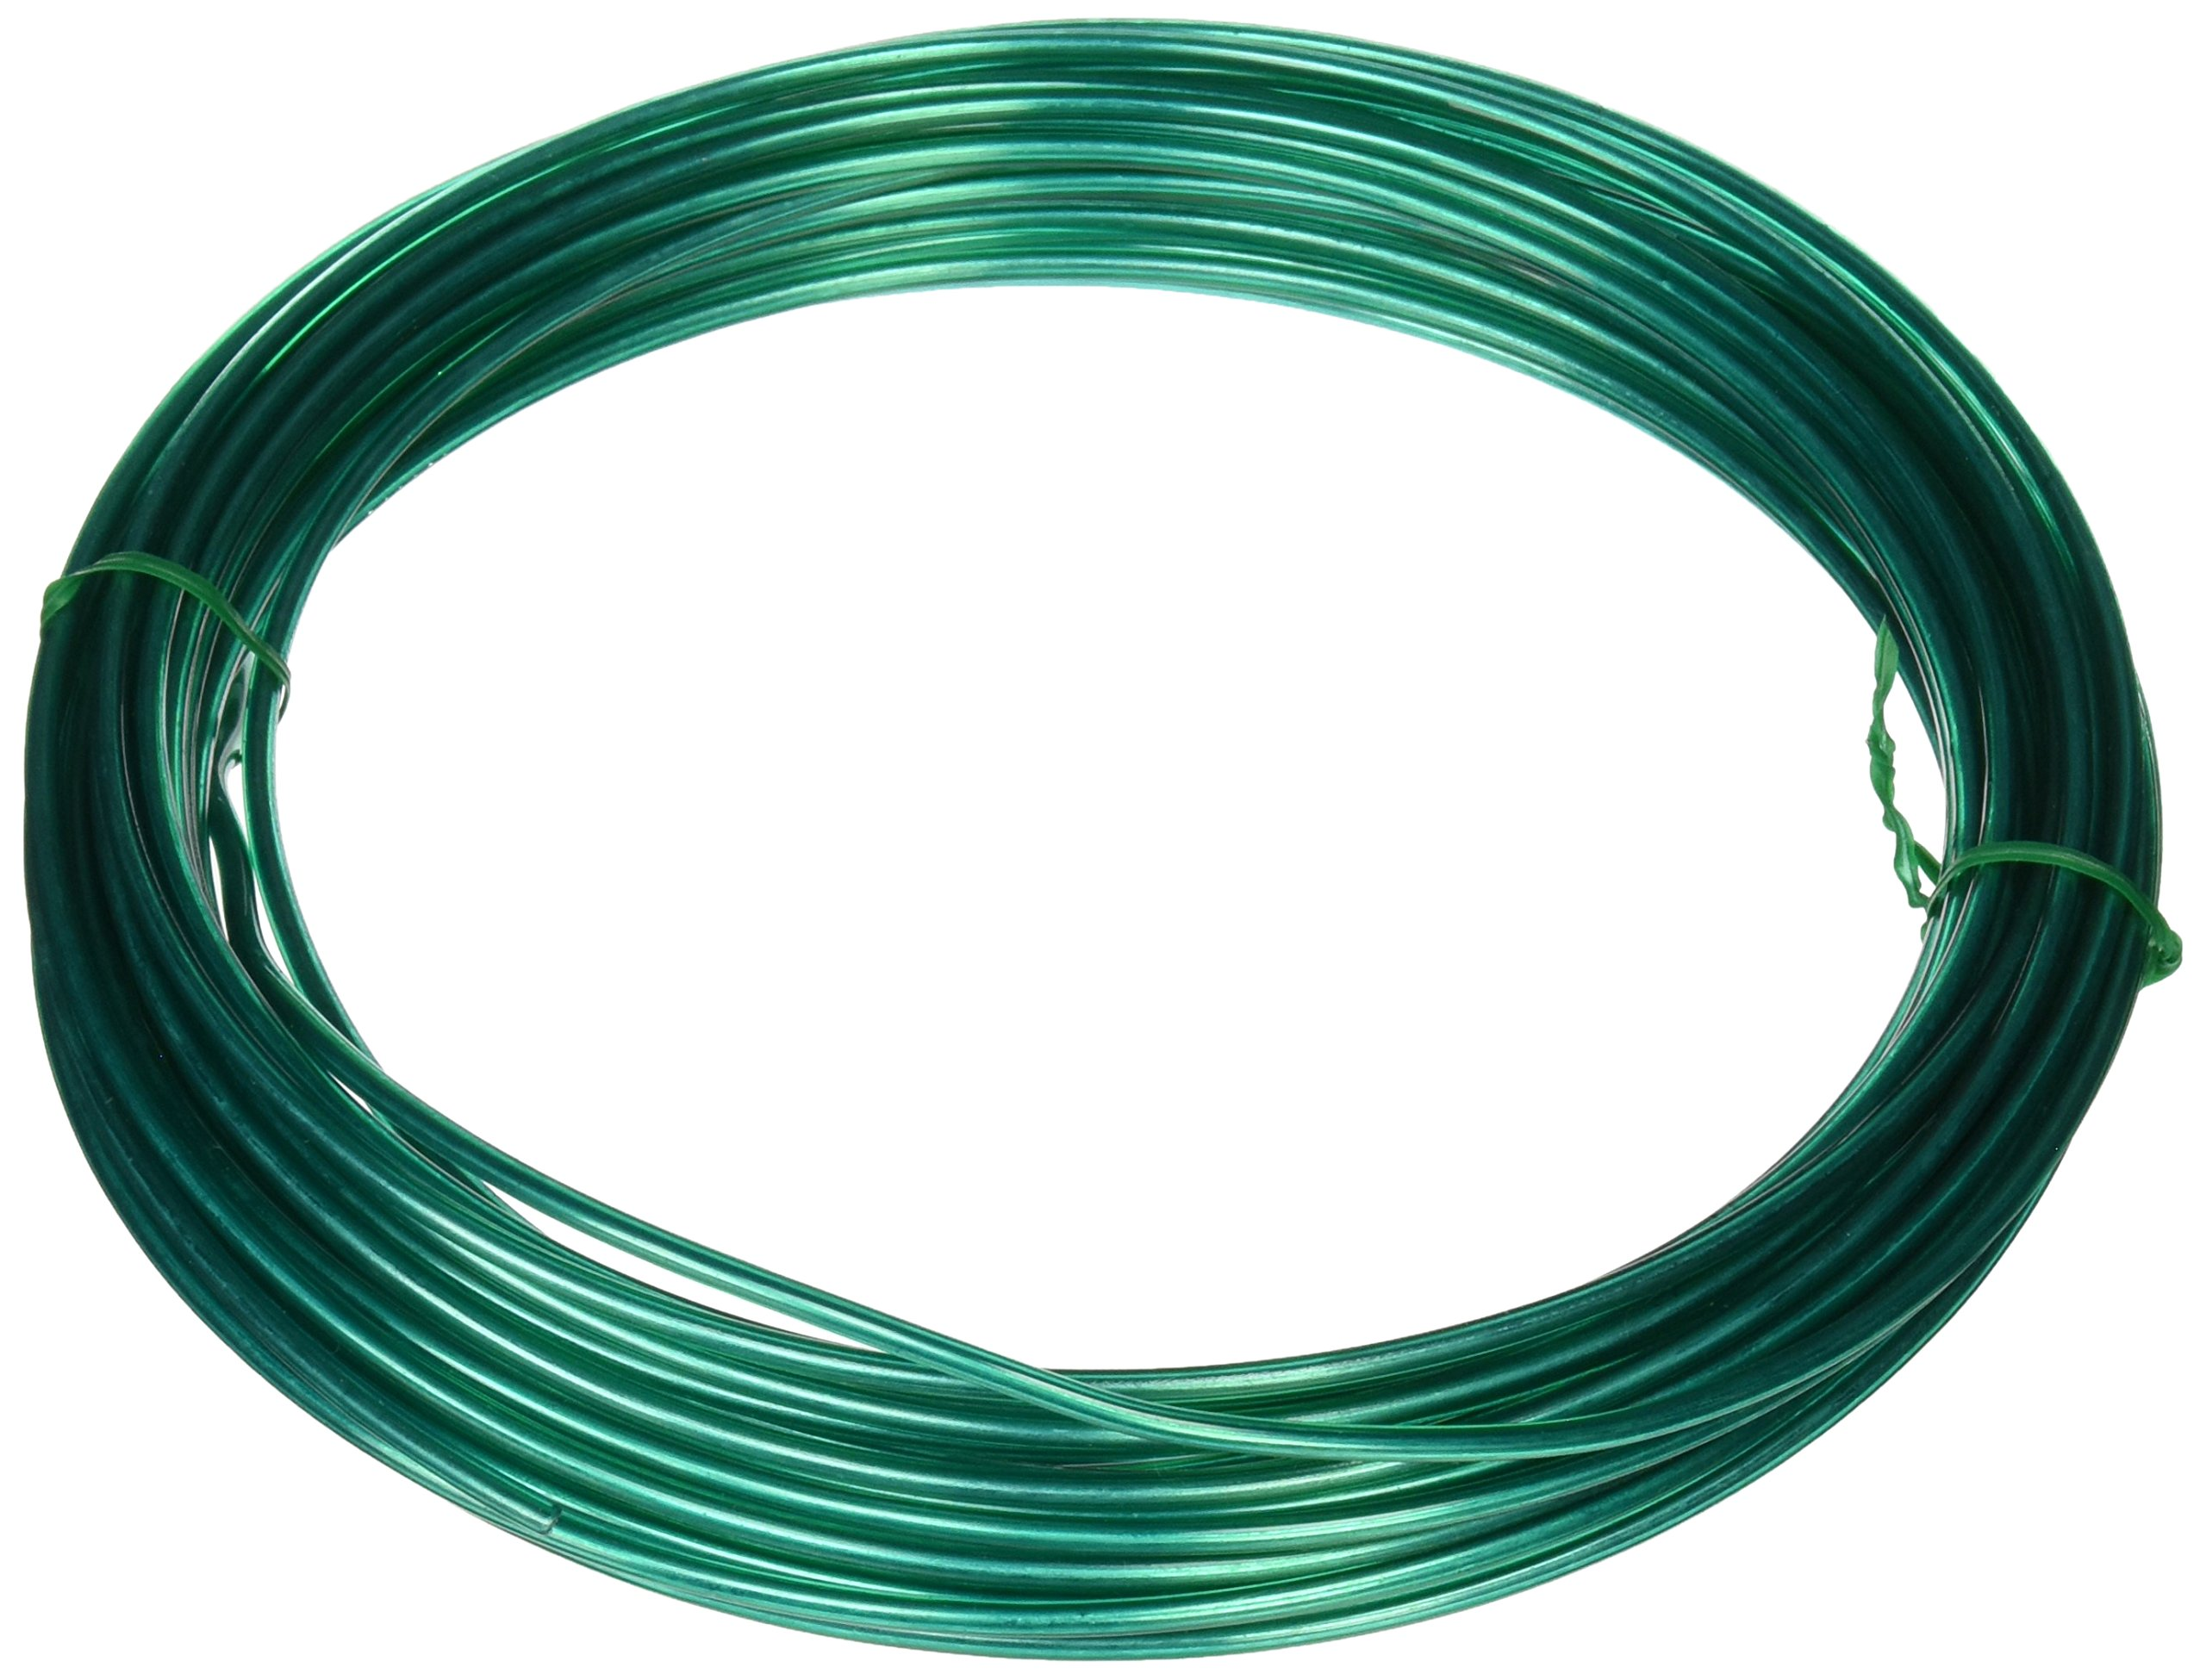 Hillman Green Plastic Coated Steel Wire for Clothesline Wire